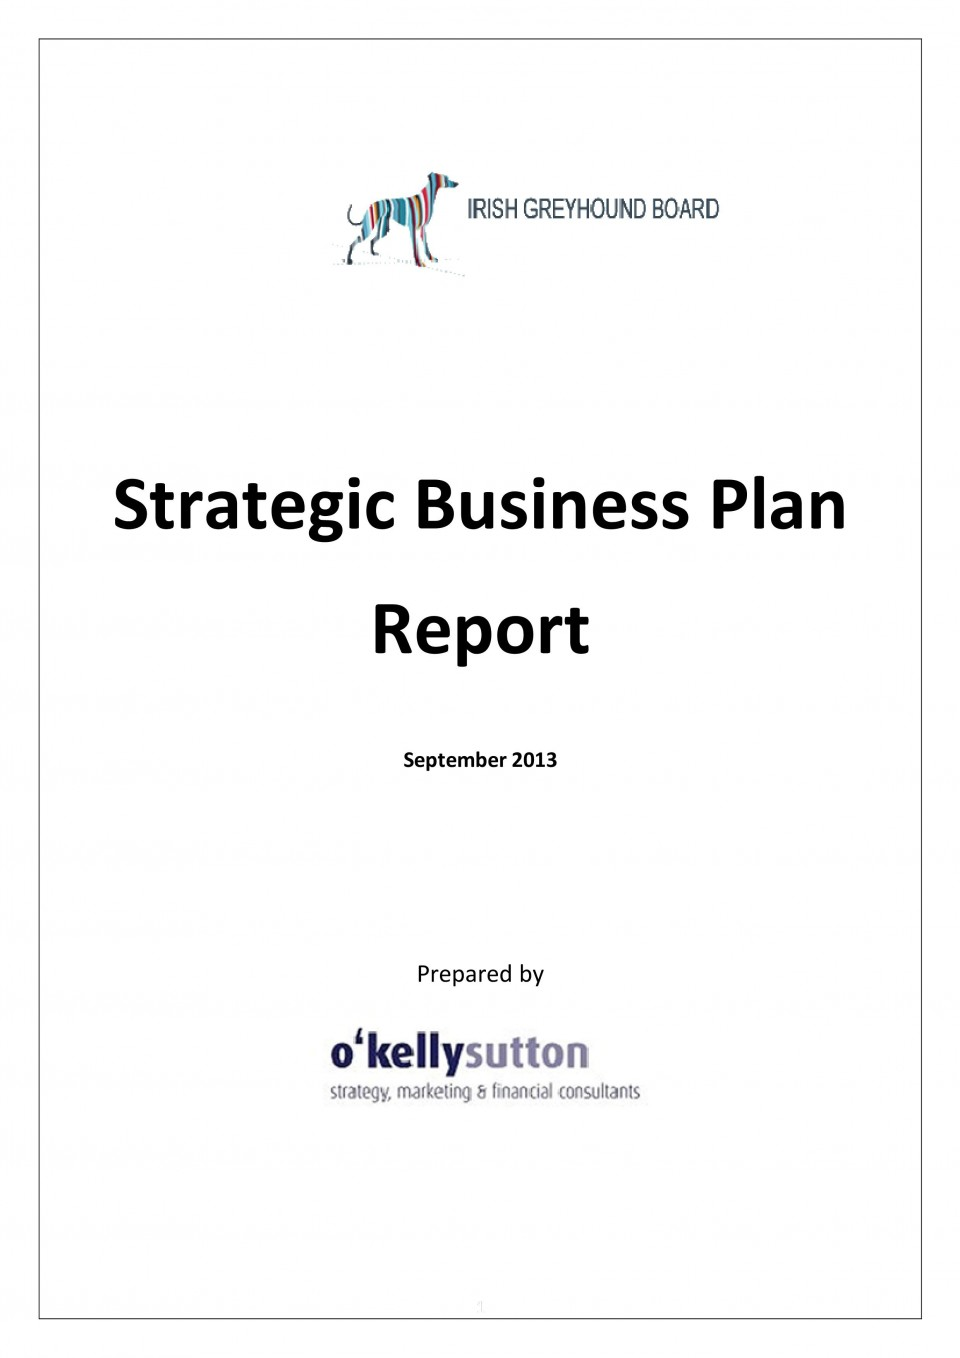 003 Awesome Strategic Busines Plan Template Highest Quality  Development Word Sample960